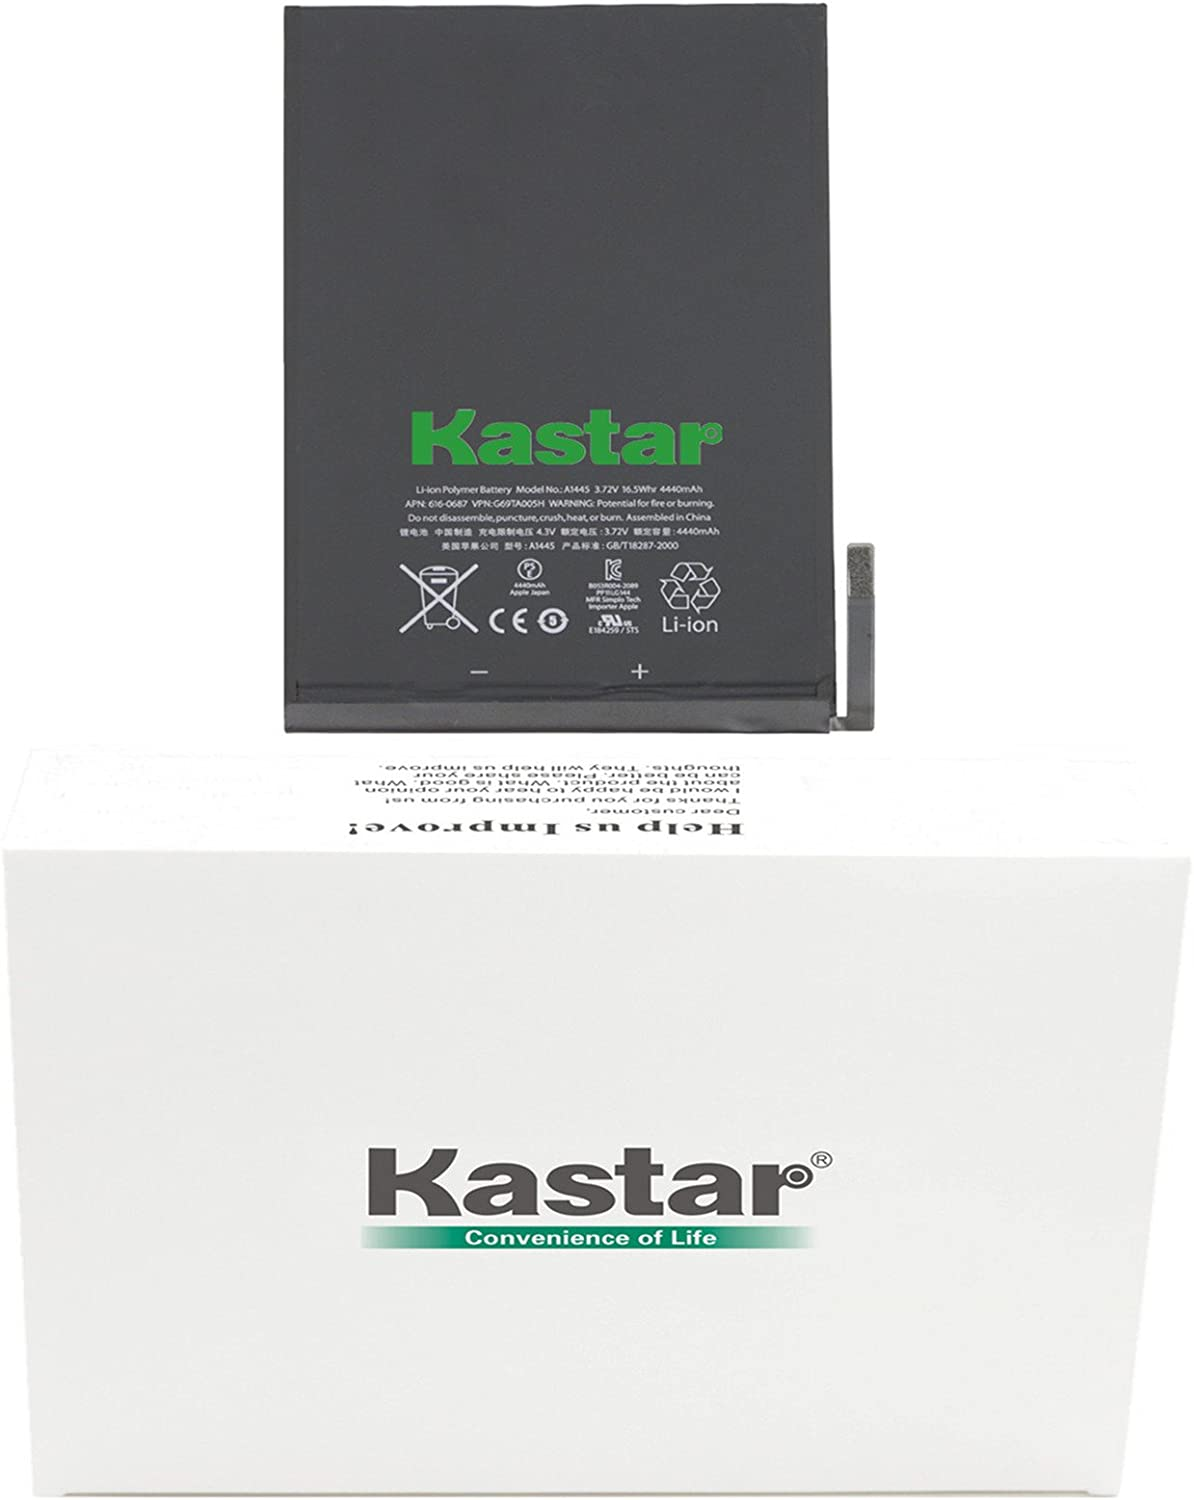 Kastar Internal Battery Replacement for iPad Mini1 (1st Generation iPad Mini) Fixes for 616-0627, 616-0633, 616-0688 and A1432, A1445, A1454, iPad Mini, iPad Mini Retina, iPad Mini WiFi